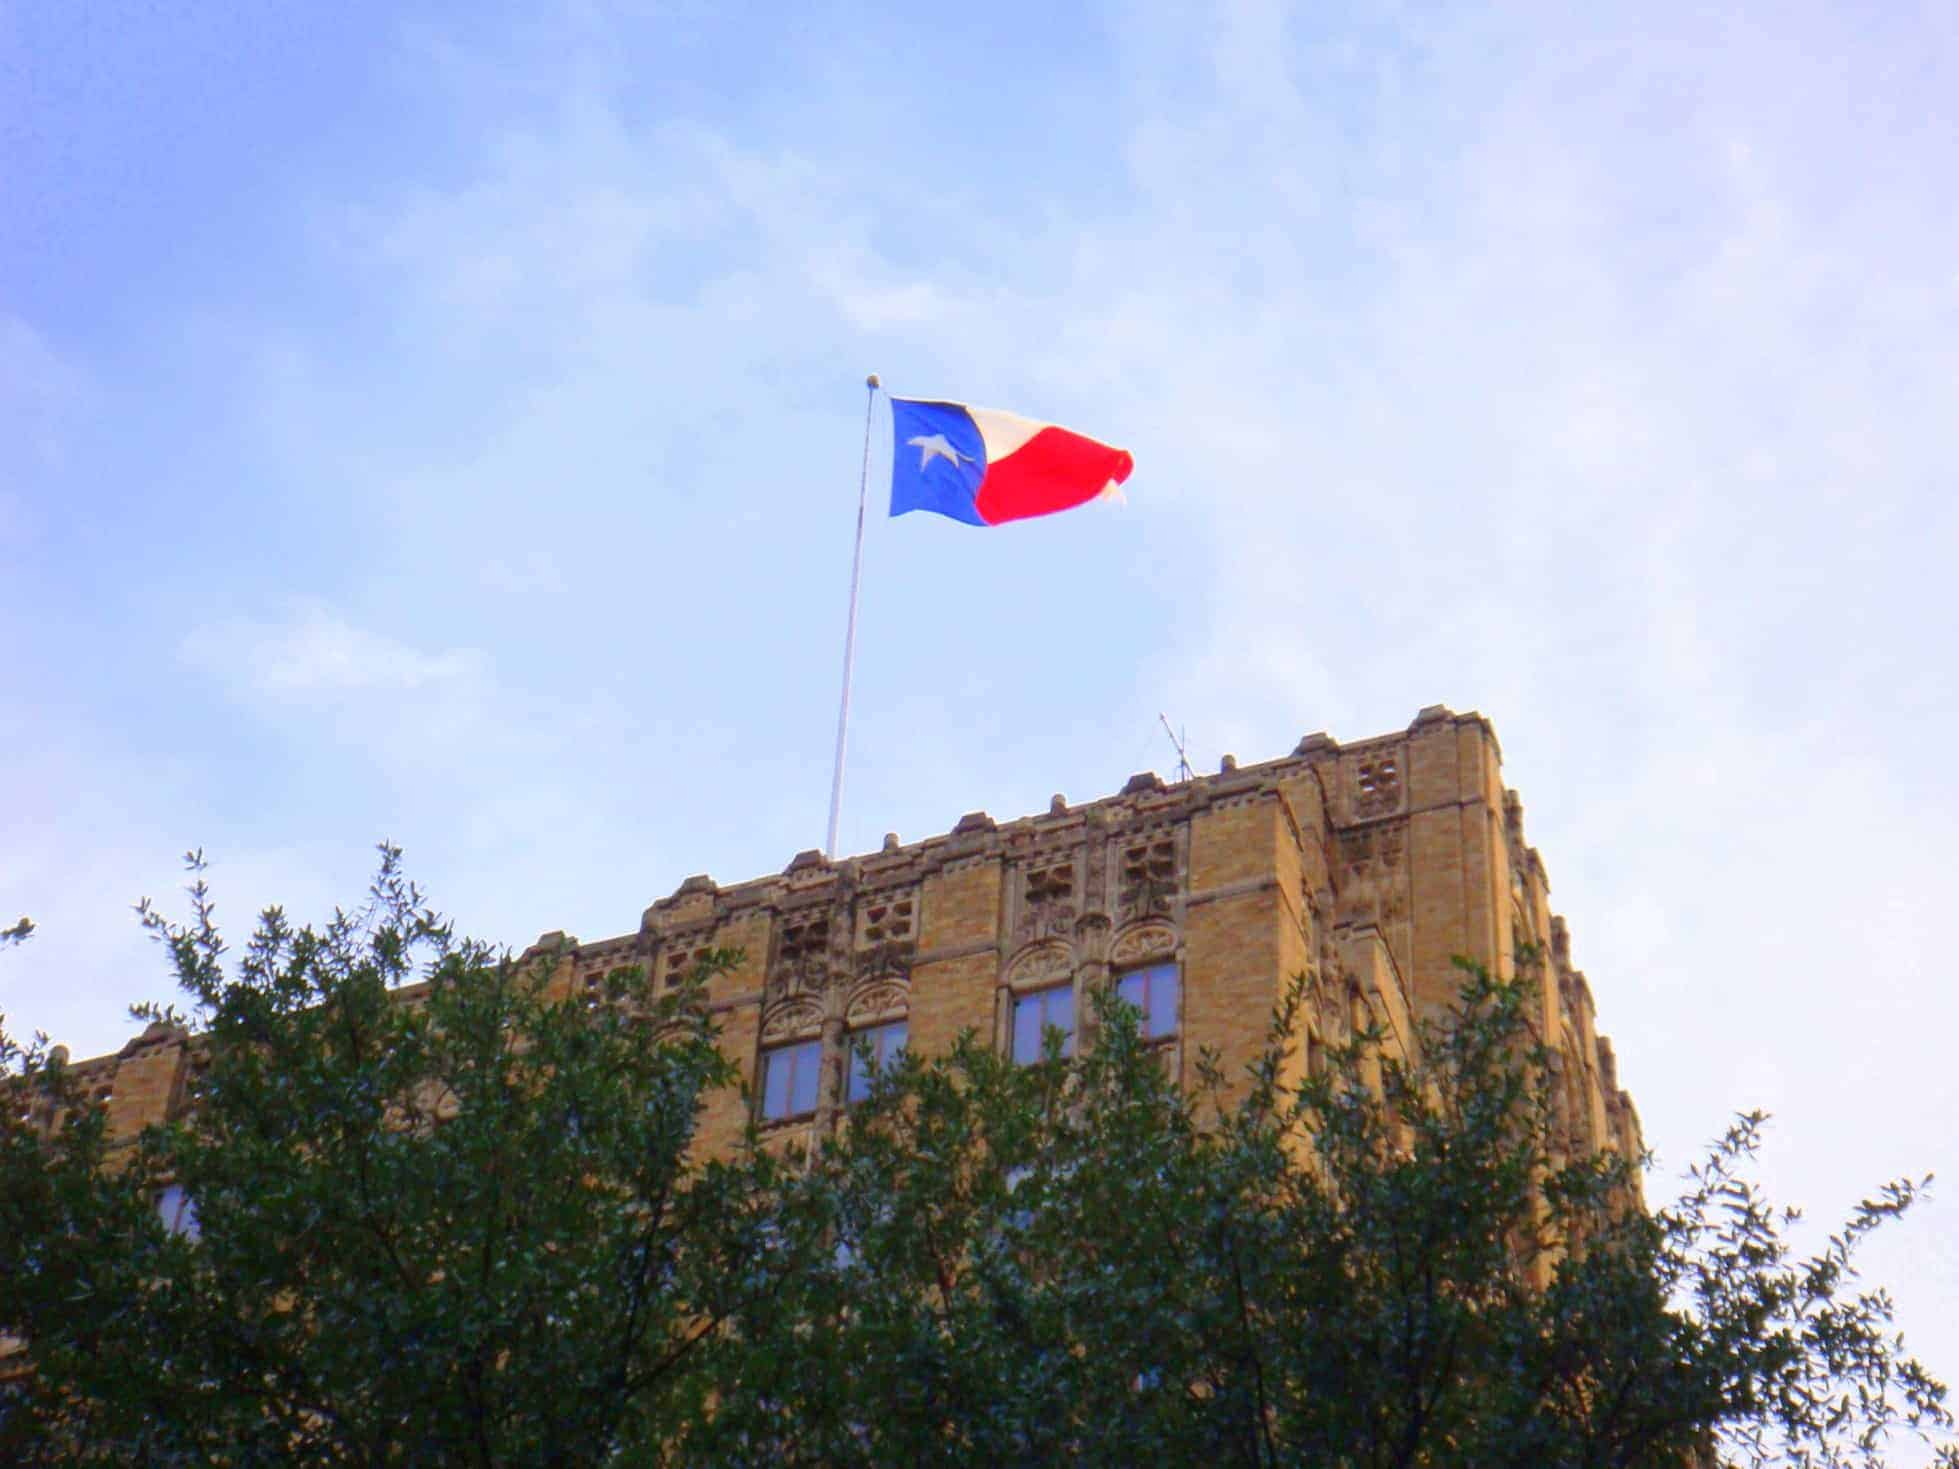 The Lone Star Flag in Texas